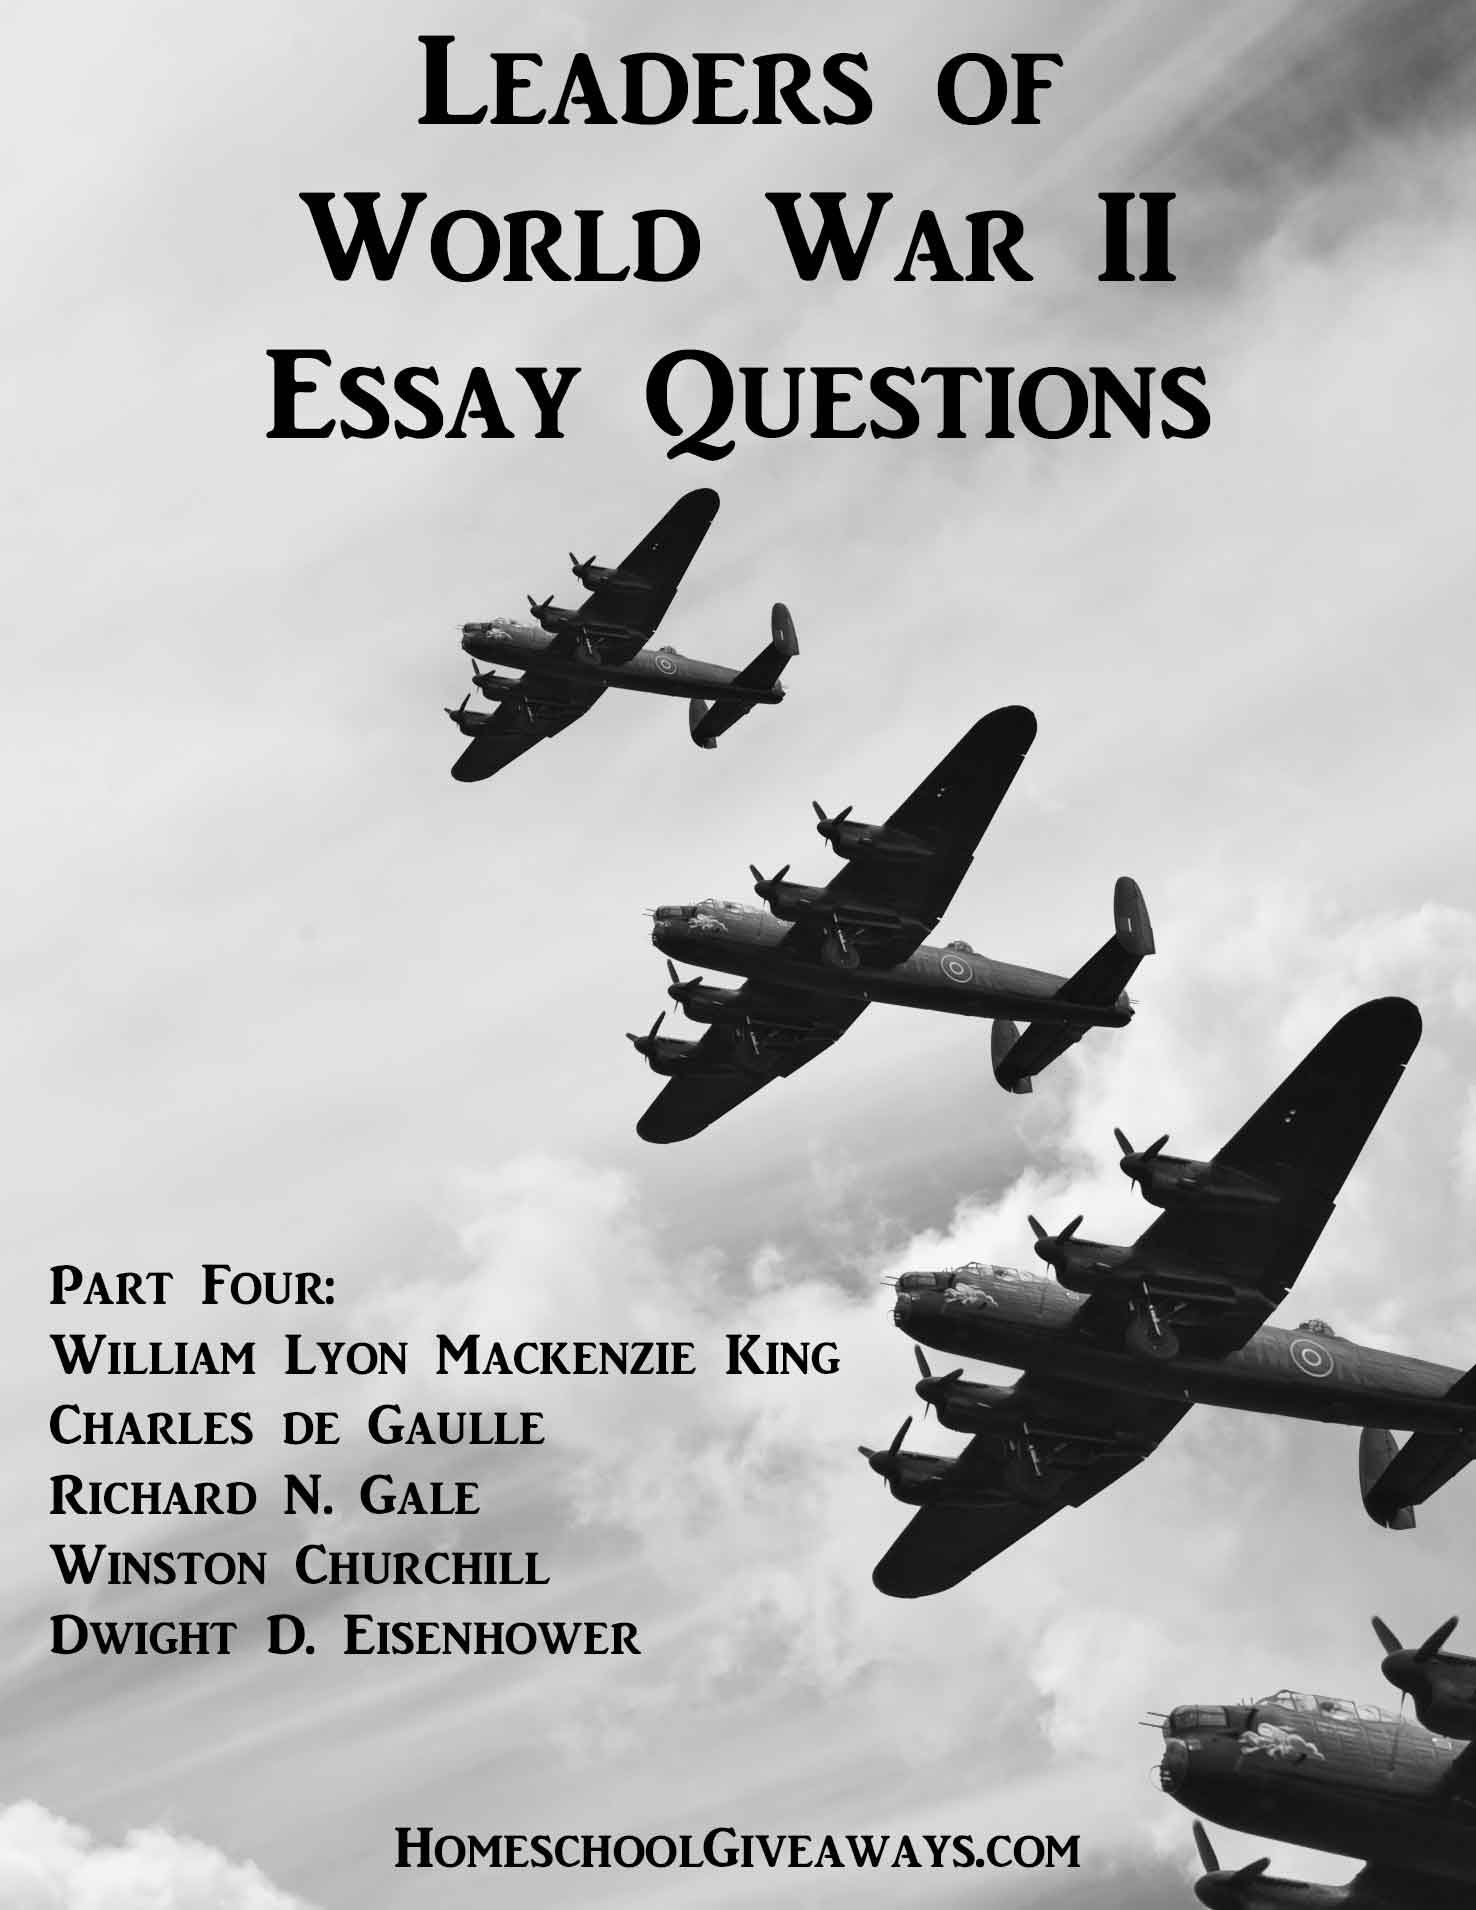 Leaders of World War II Essay Questions, Part Four